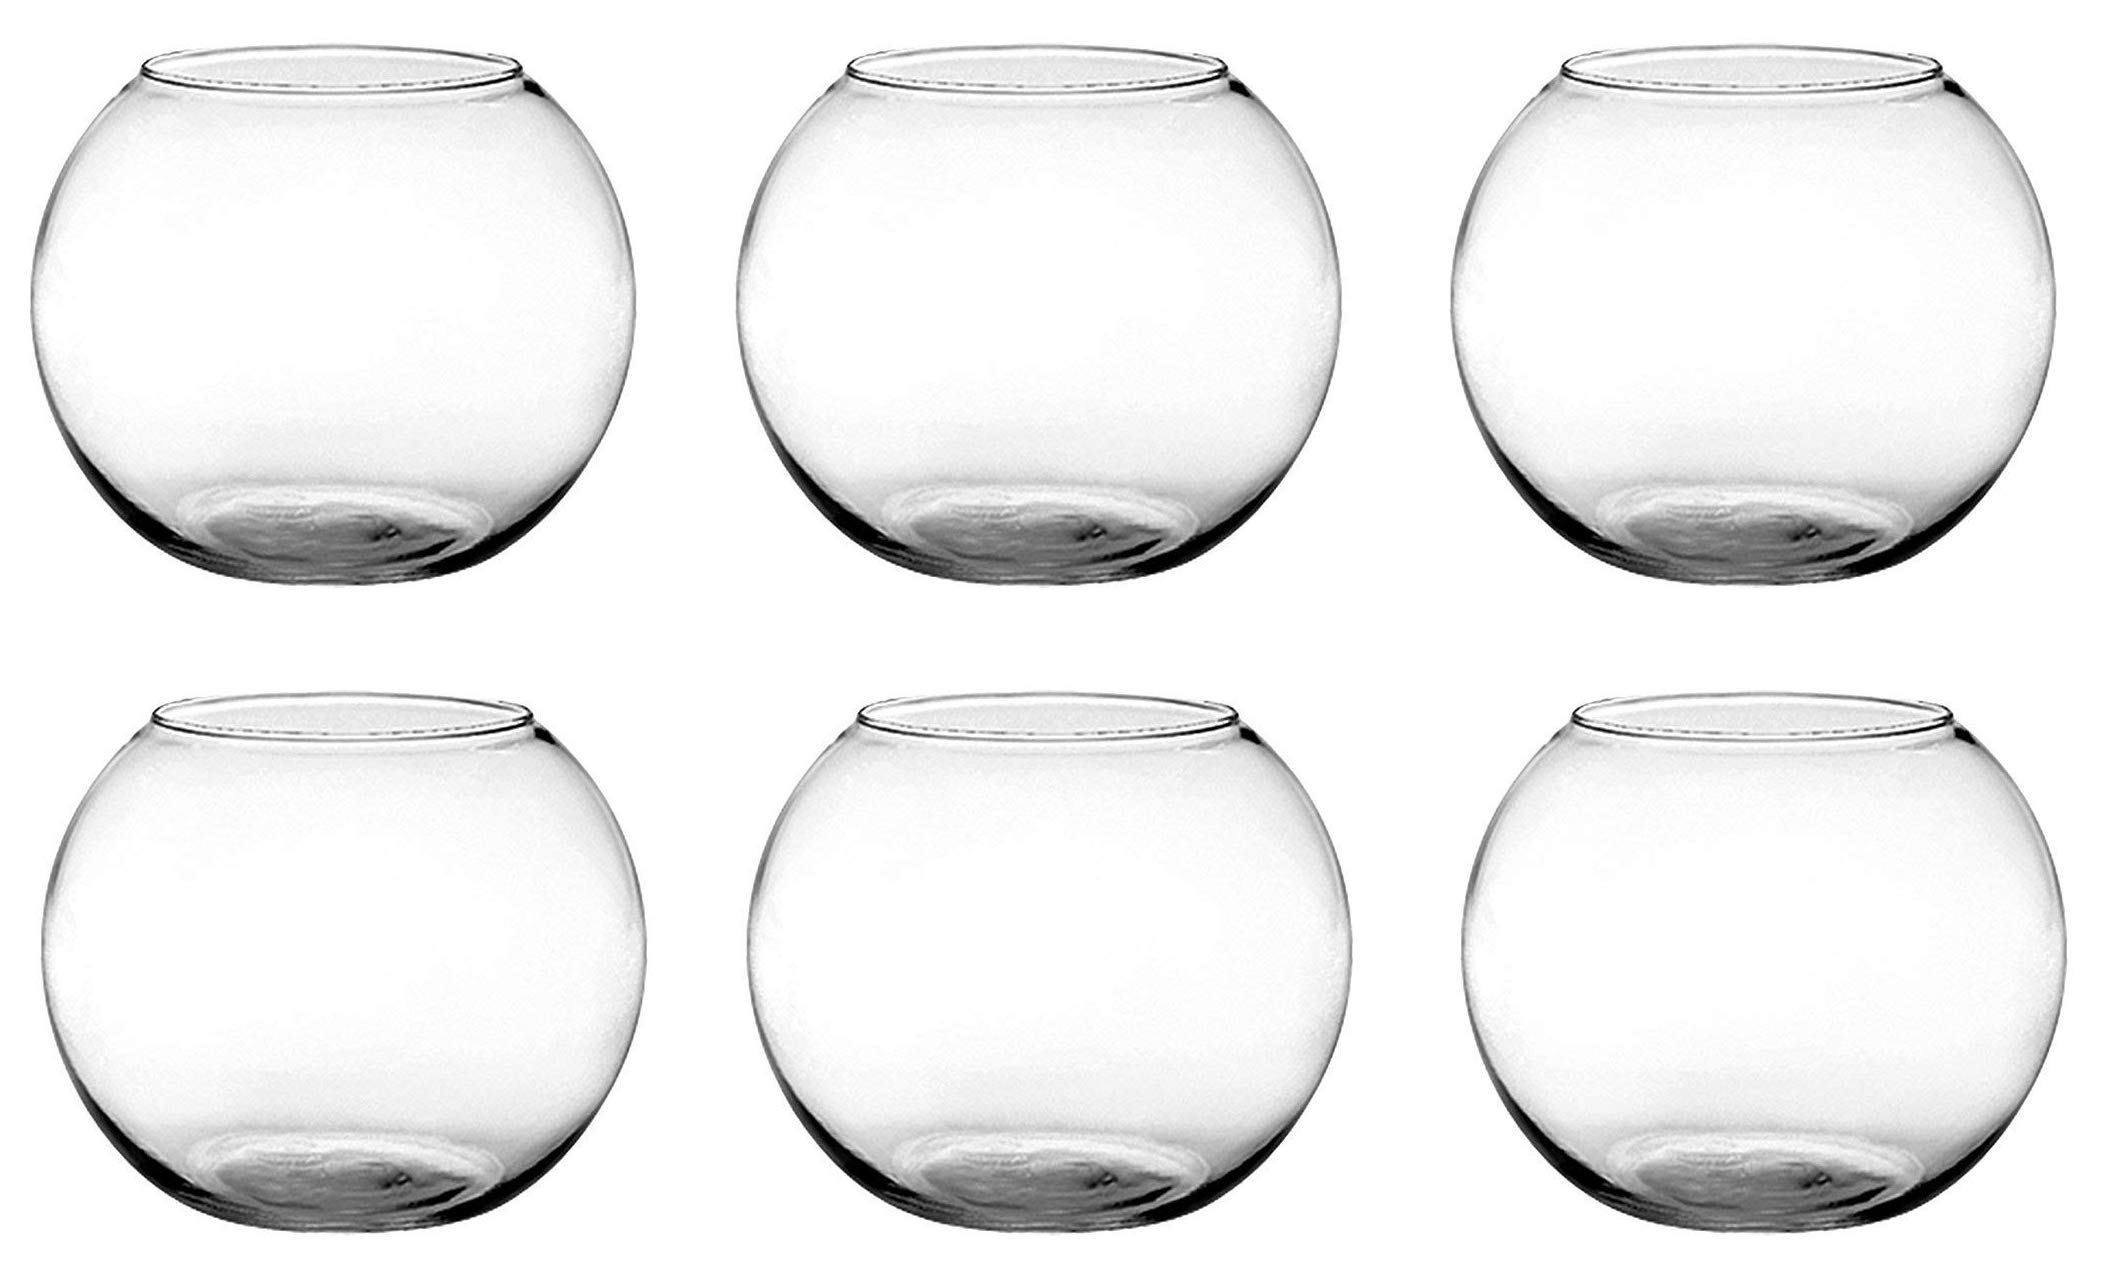 Floral Supply Online - 6'' Rose Bowls (Set of 6) and Flower Guide Booklet - Glass Round Vases for Weddings, Events, Decorating, Arrangements, Flowers, Office, or Home Decor. by Floral Supply Online